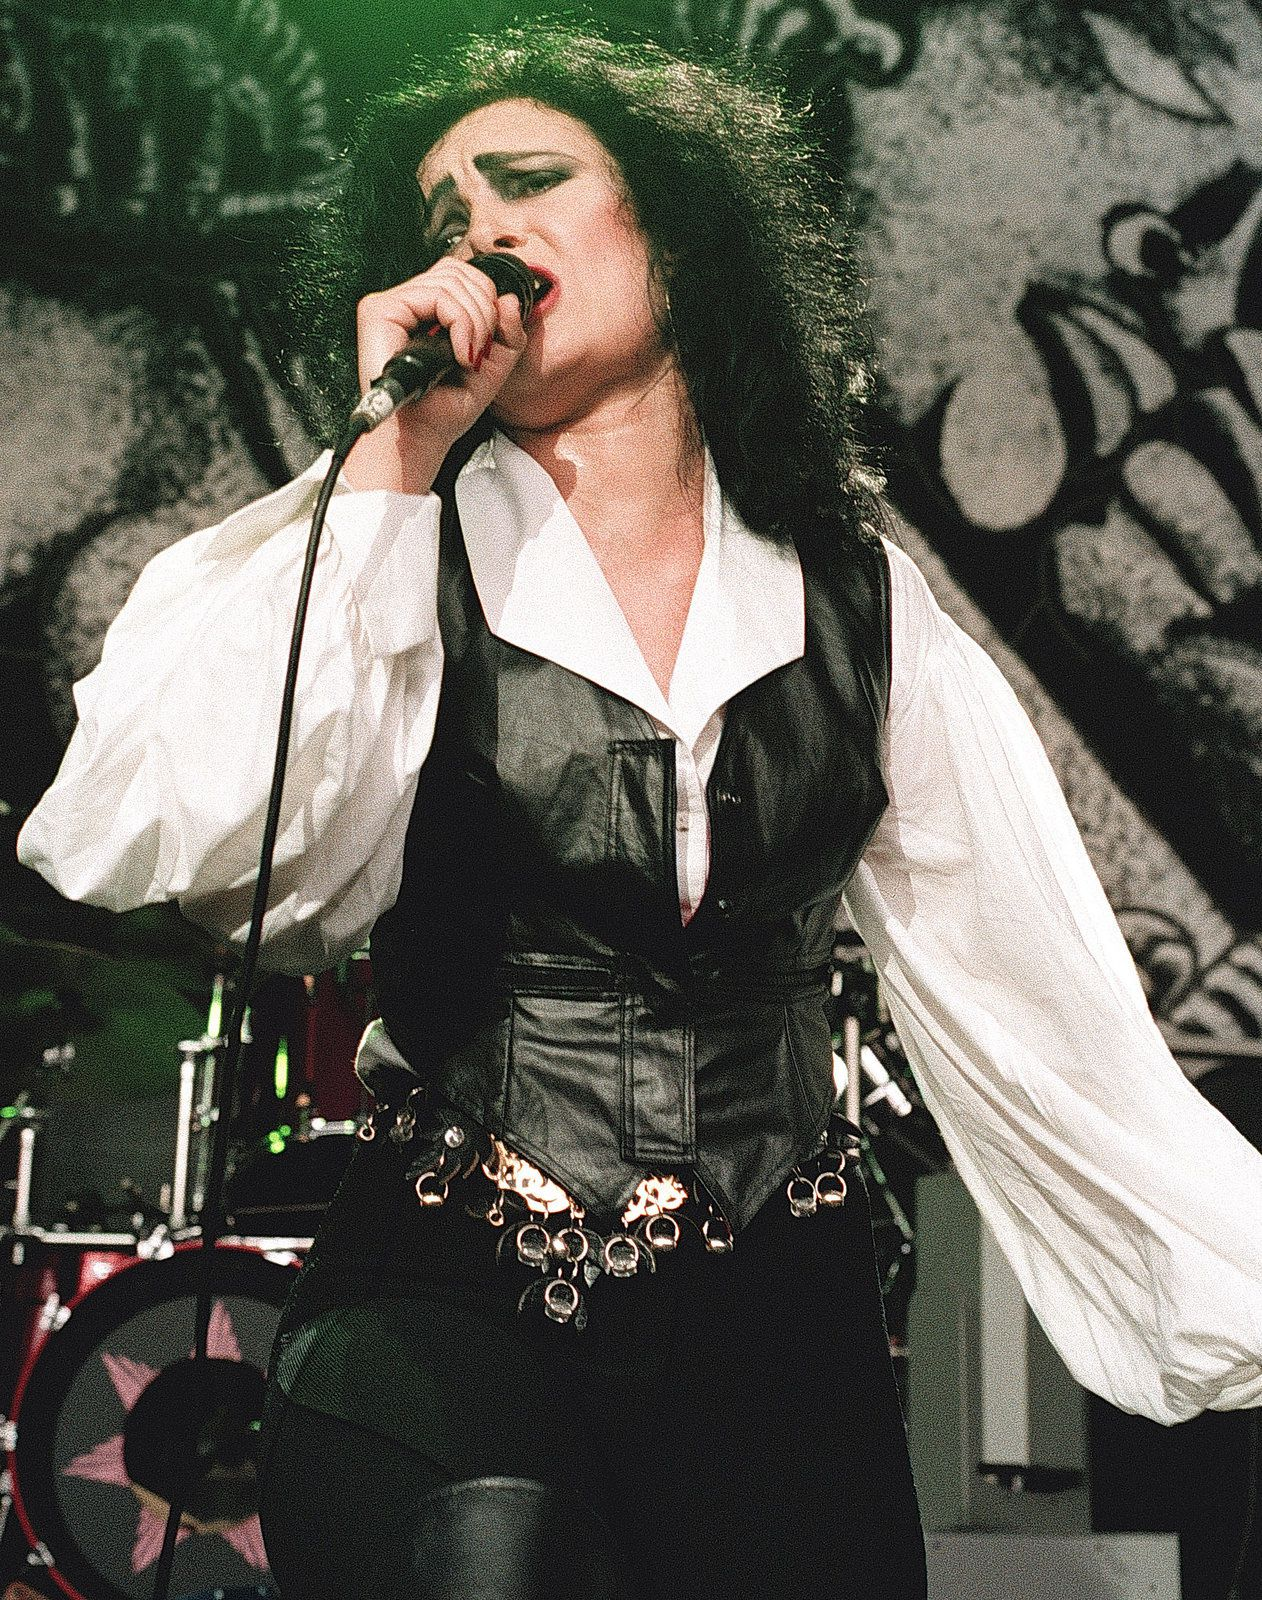 Siouxsie Sioux on stage